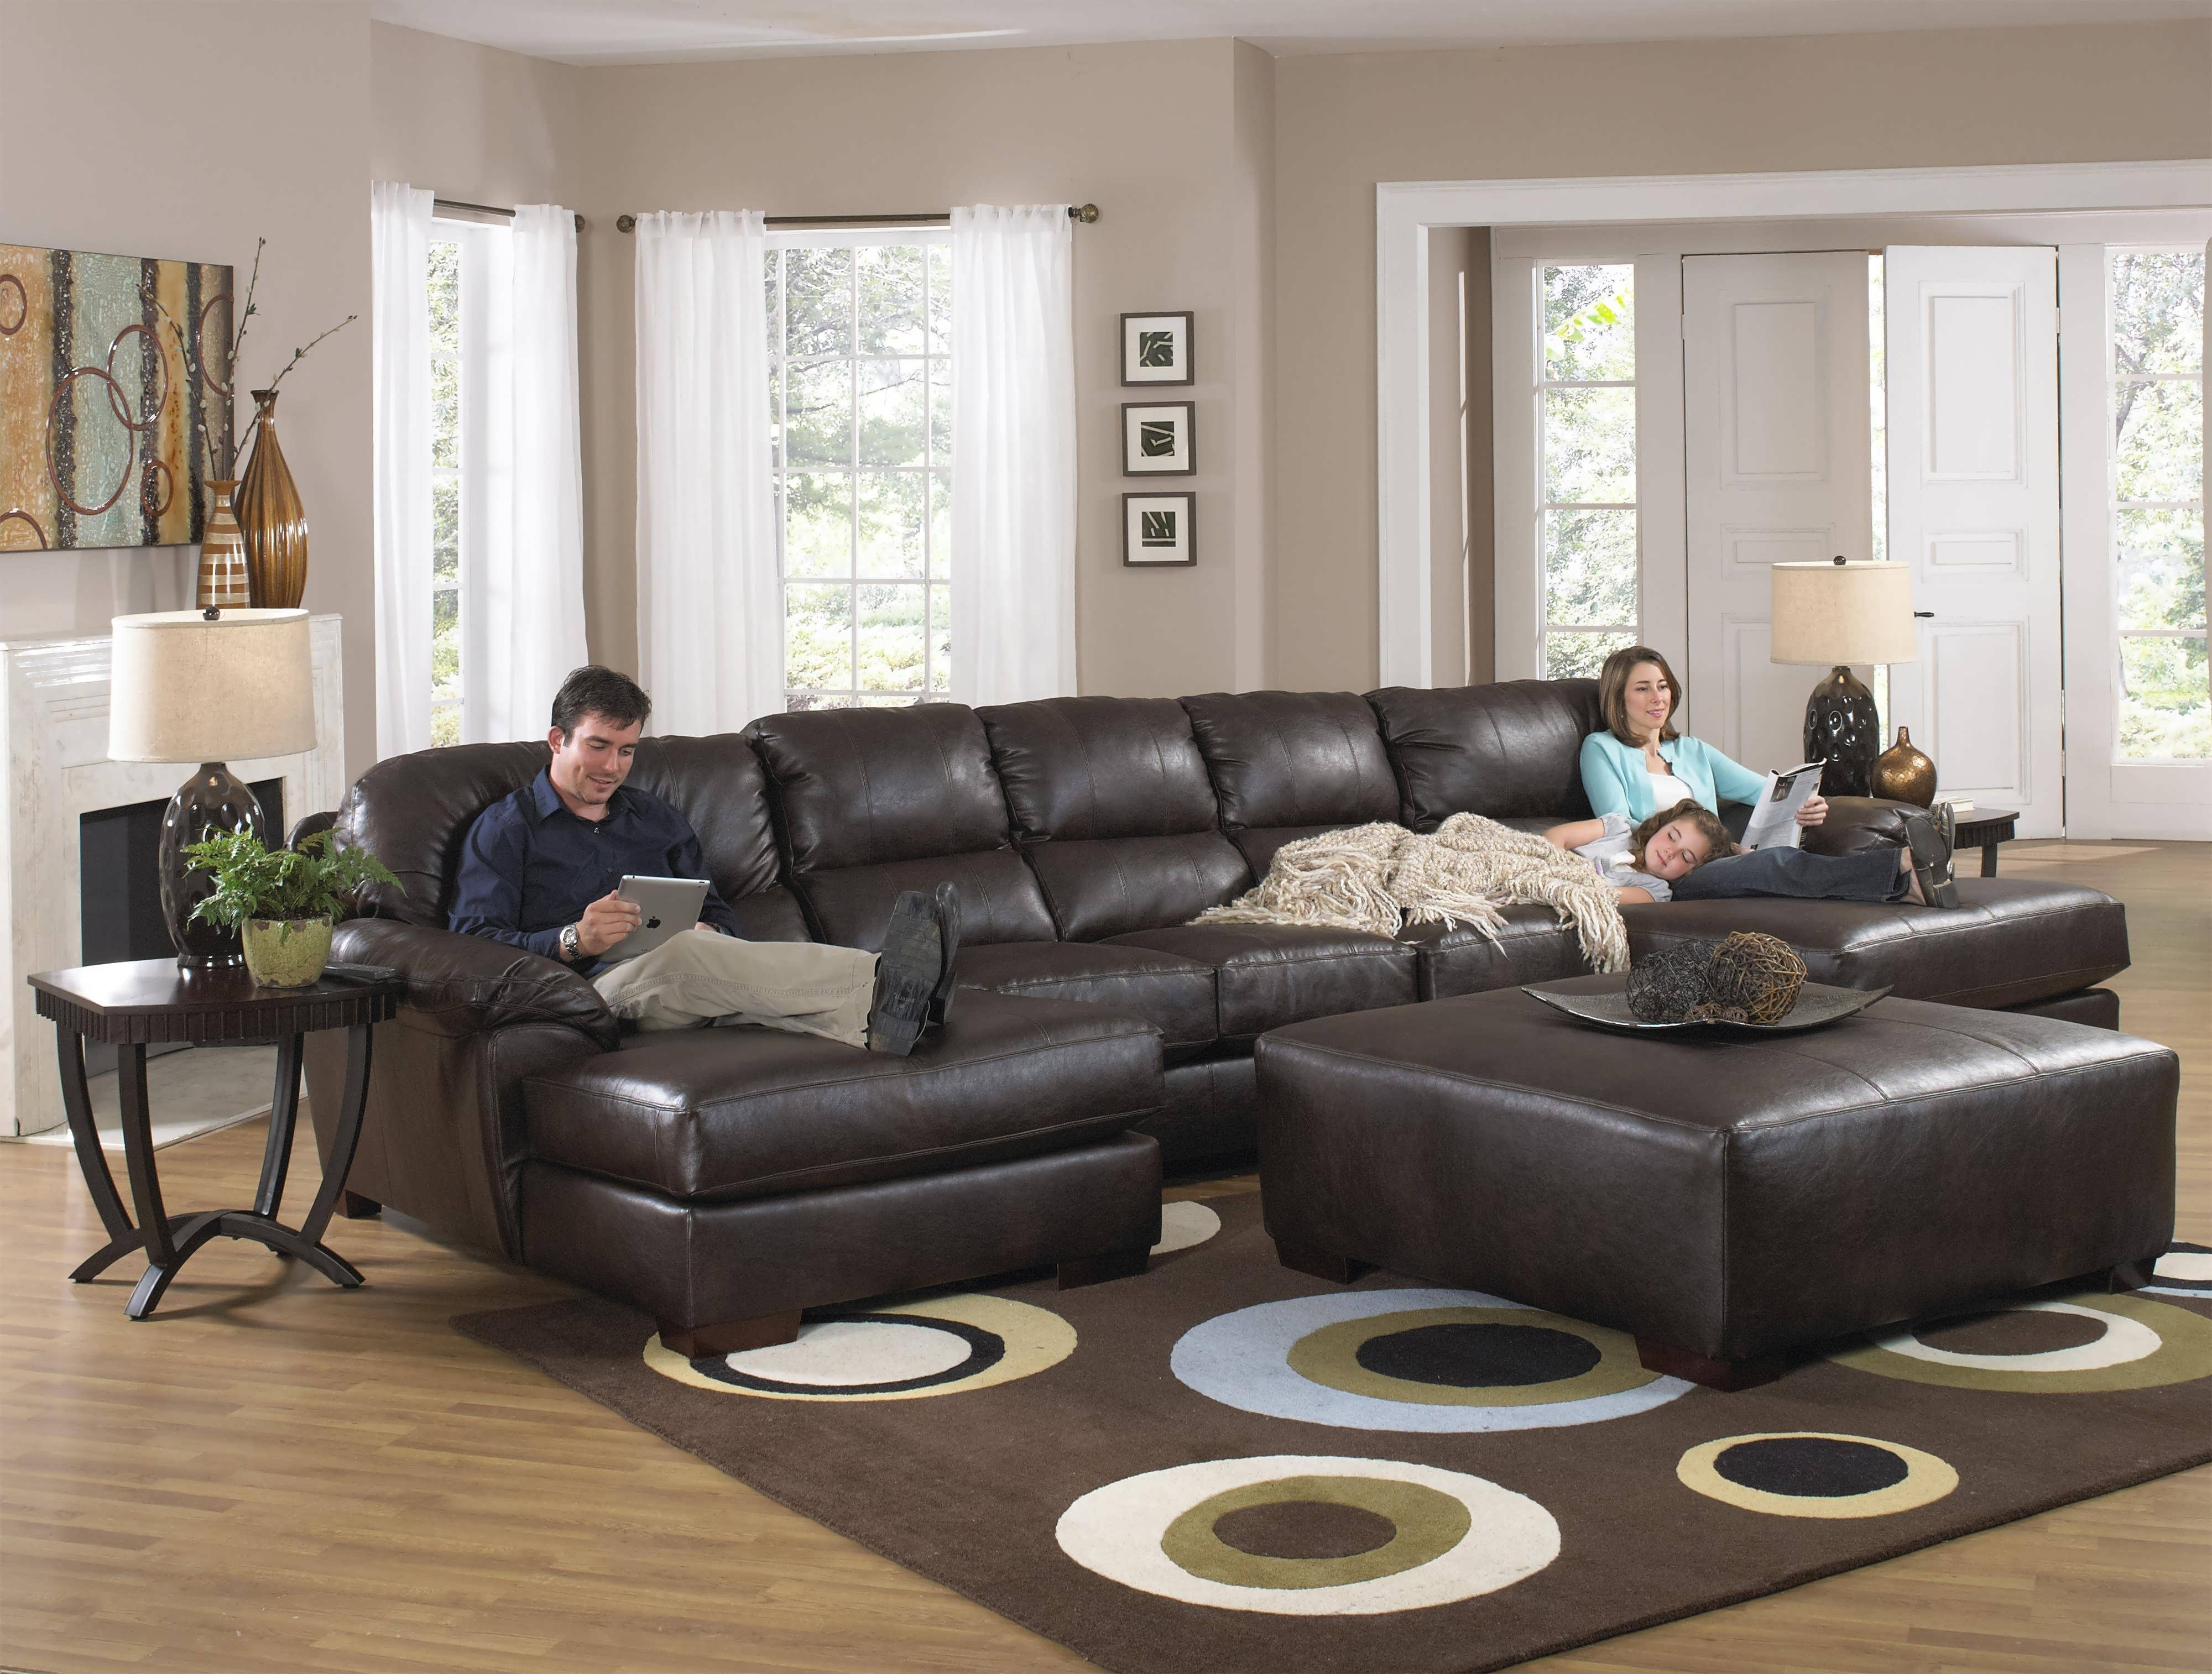 2017 Sectionals With Chaise Lounge With Sofa : Cheap Sectionals Grey Leather Sectional Small Sectional (View 2 of 15)